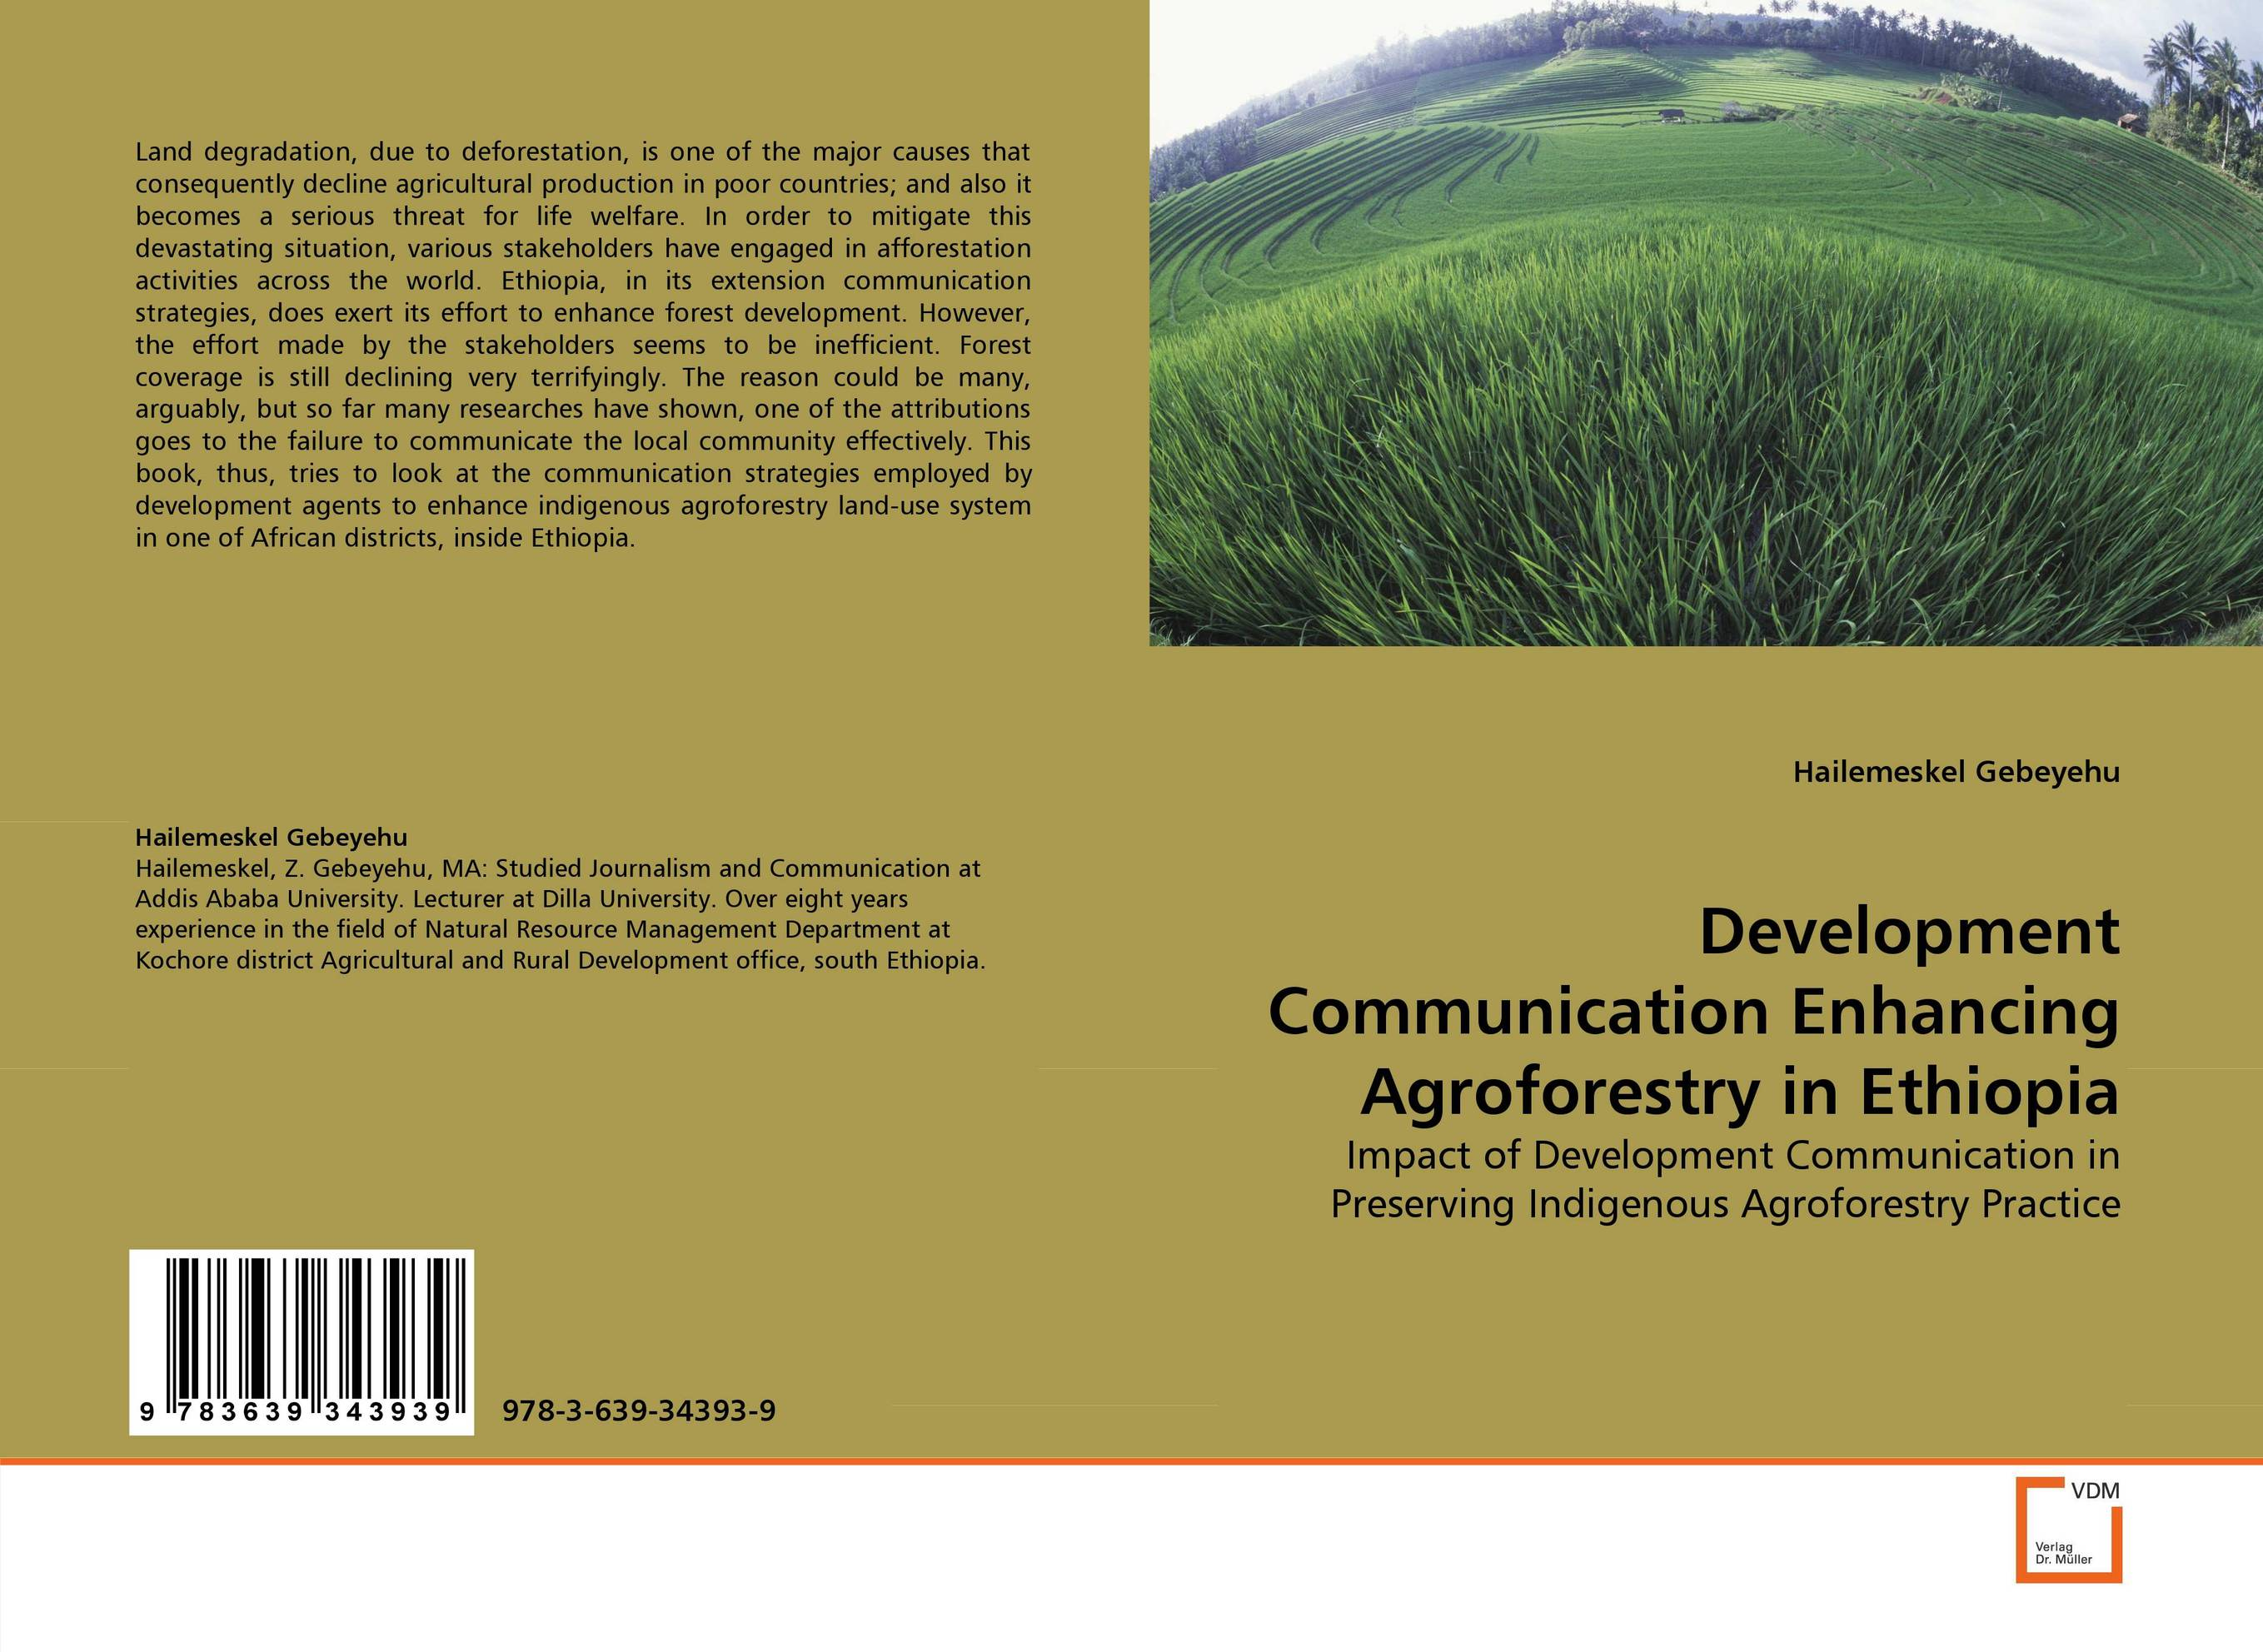 Development Communication Enhancing Agroforestry in Ethiopia father's role in enhancing children's development